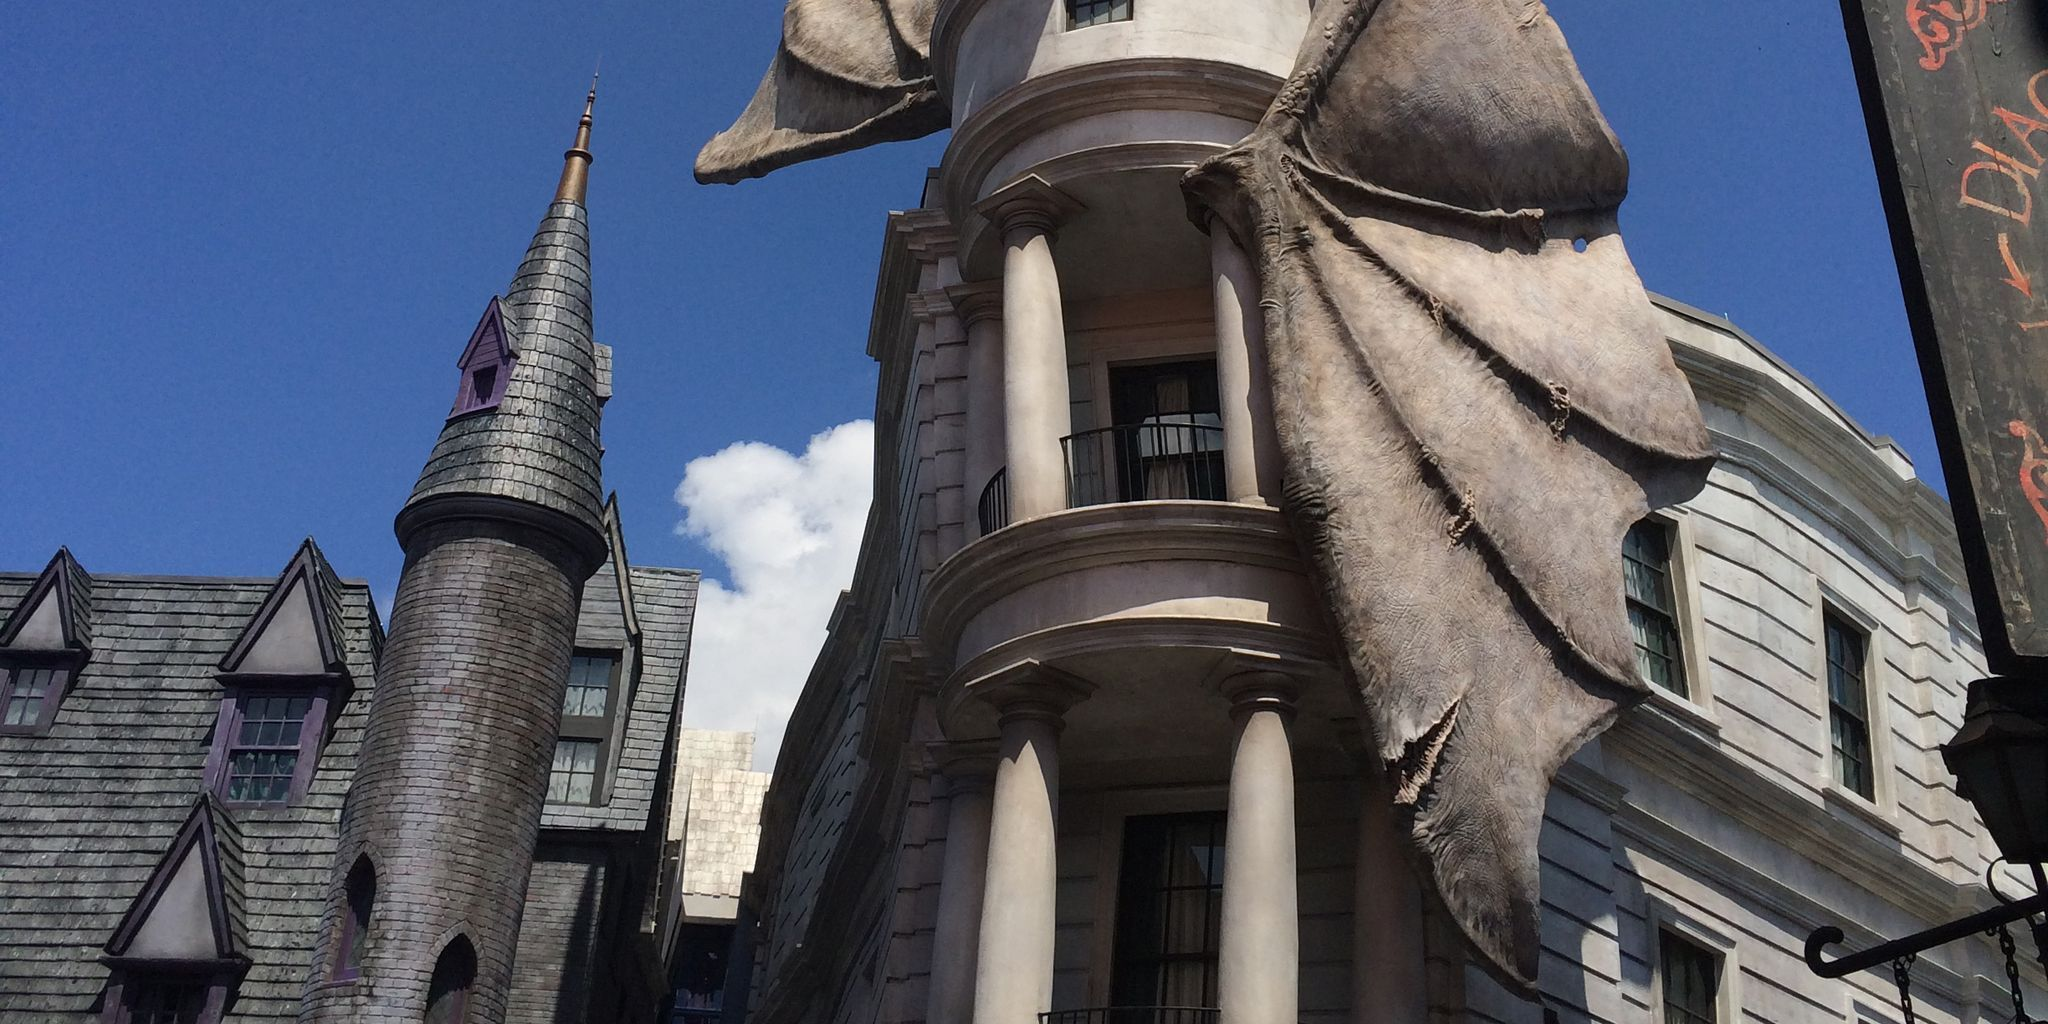 Diagon Alley Wizarding World of Harry Potter Universal Studios ...